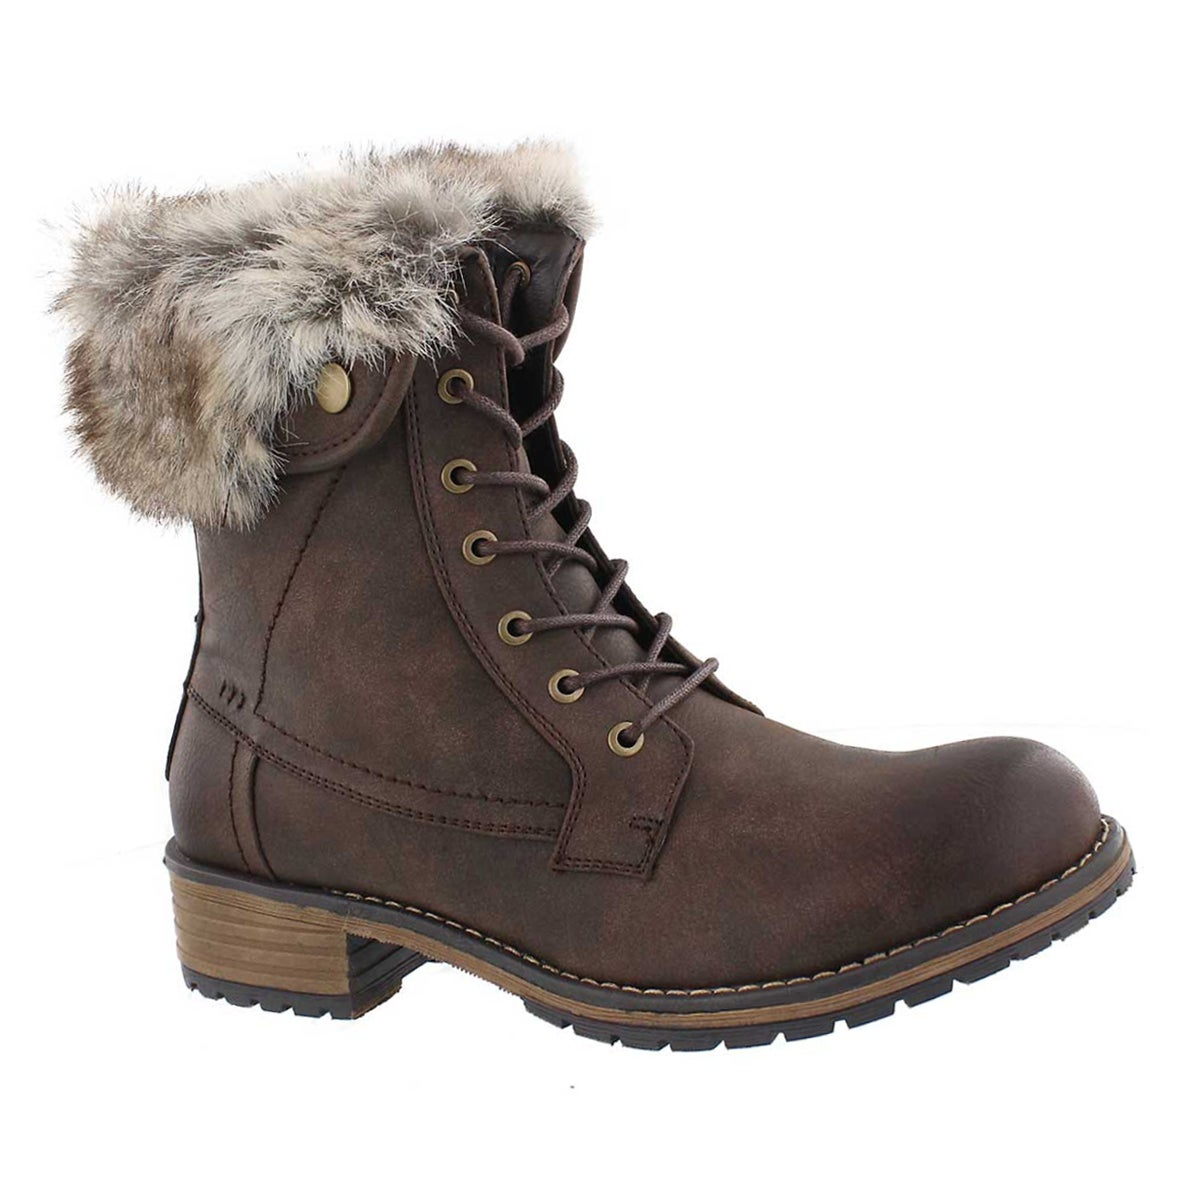 Lds Hermione brown fur top lace up boot